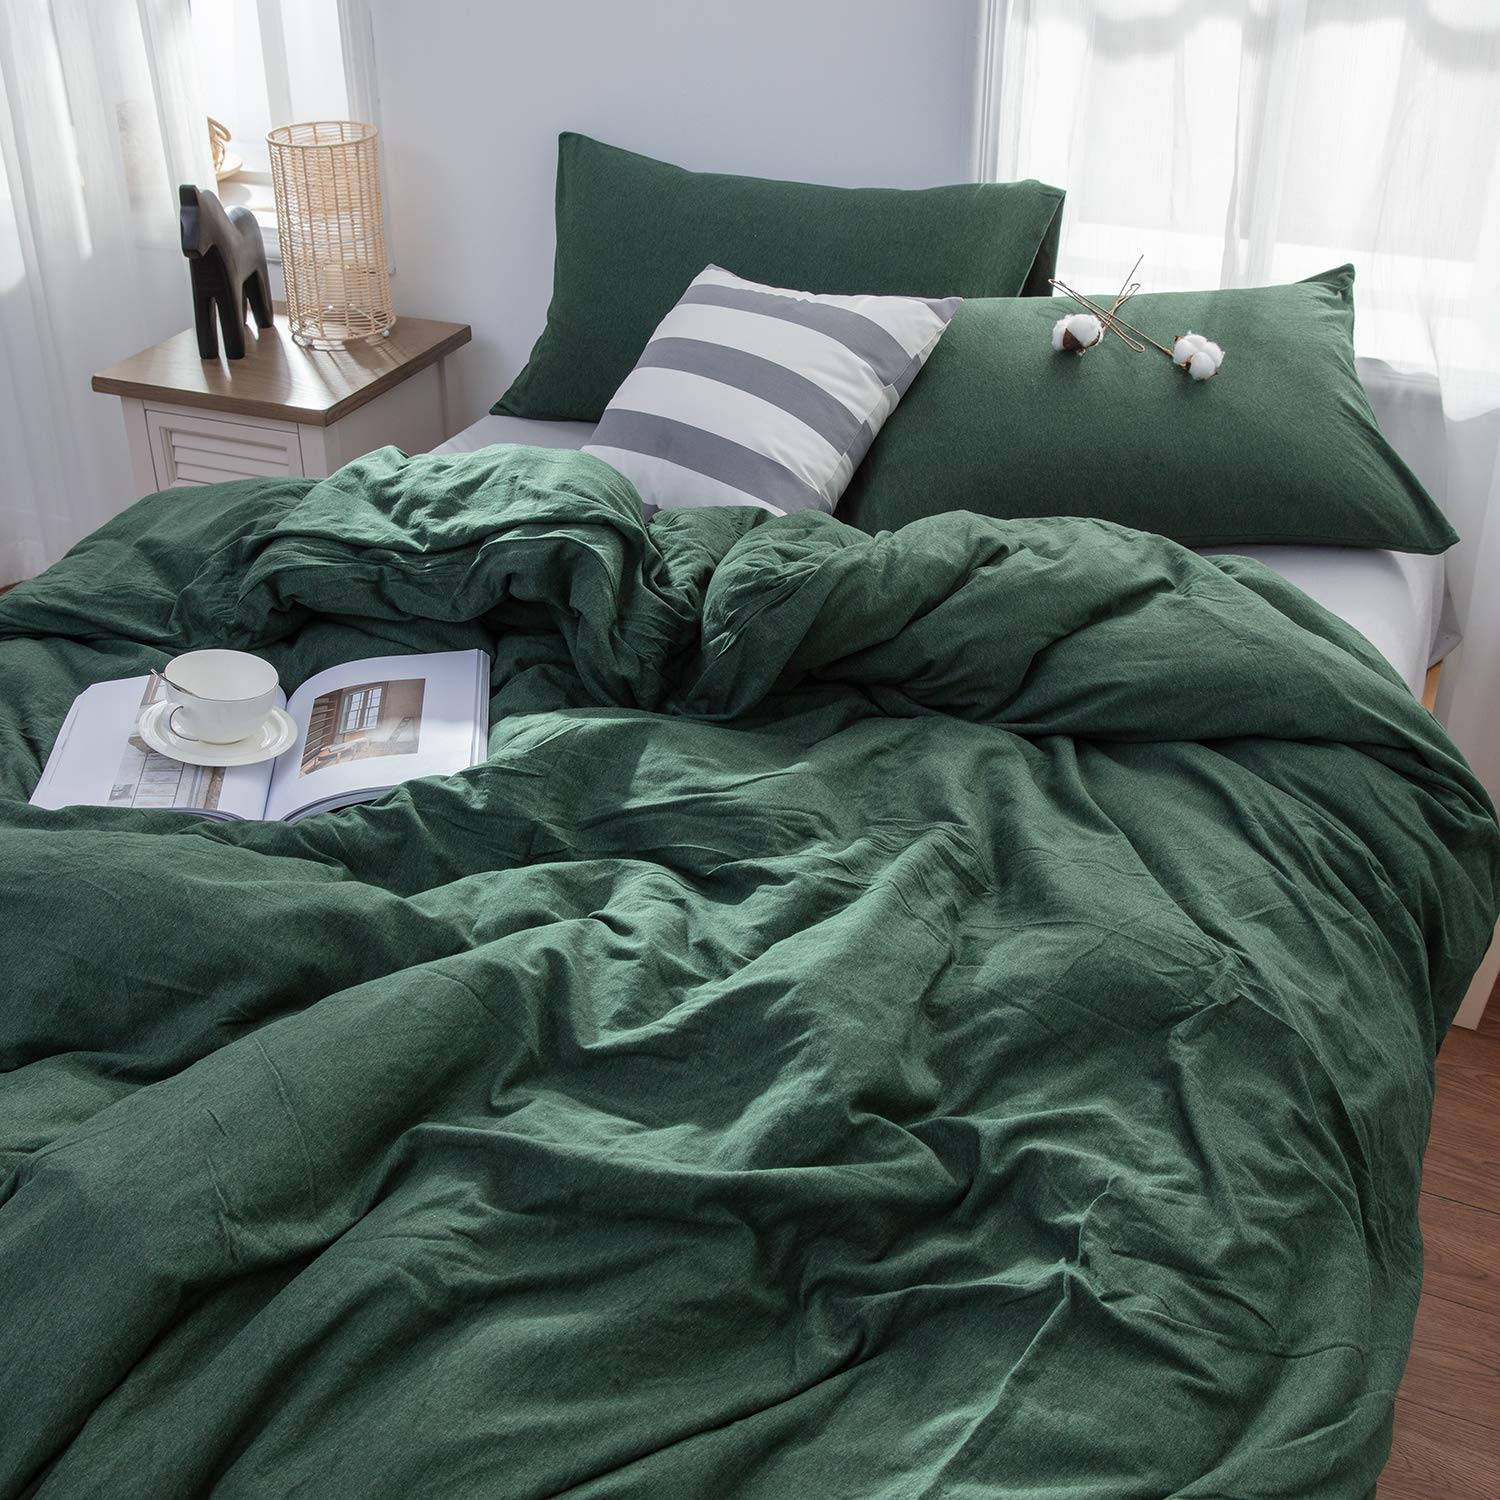 LIFETOWN Green Duvet Cover, Jersey Knit Cotton Duvet Cover Set 3 Pieces, Simple Solid Design, Super Soft and Easy Care (Full/Queen, Dark Green) by LIFETOWN (Image #3)